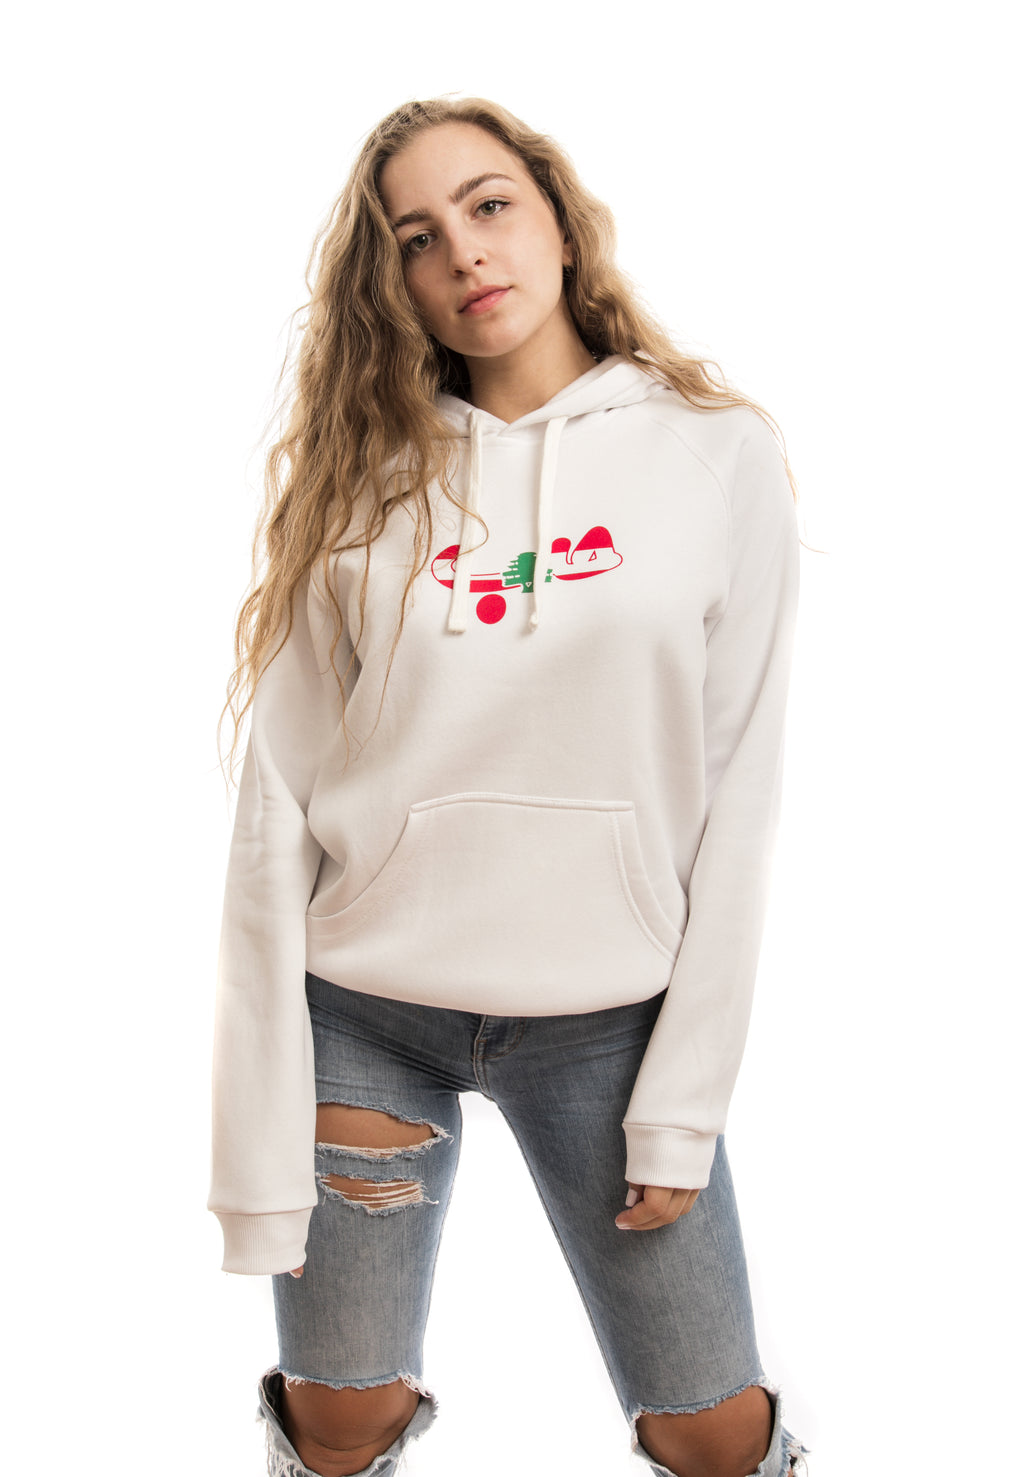 Boshies, Lebanese Hob Hoodie حب, boshies store, , boshies, arab, hob, hobb, love, حب, amour, fashion, clothing, shopping, beirut, بيروت, dubai, abu dhabi, doha, kuwait city, riyadh, jeddah, damascus, cairo, shirt, tshirt, hoodie, socks, sweater, crop sweater, dress, sweatpants, jogger, tarboosh, tarbouche, tarboush, طربوش, techno, تكنو, habibi, حبيبي, lebanon, ksa, uae, qatar, kuwait, bahrain, egypt, morocco, tunisia, algeria, syria, oriental, lebanese, saudi, emirati,